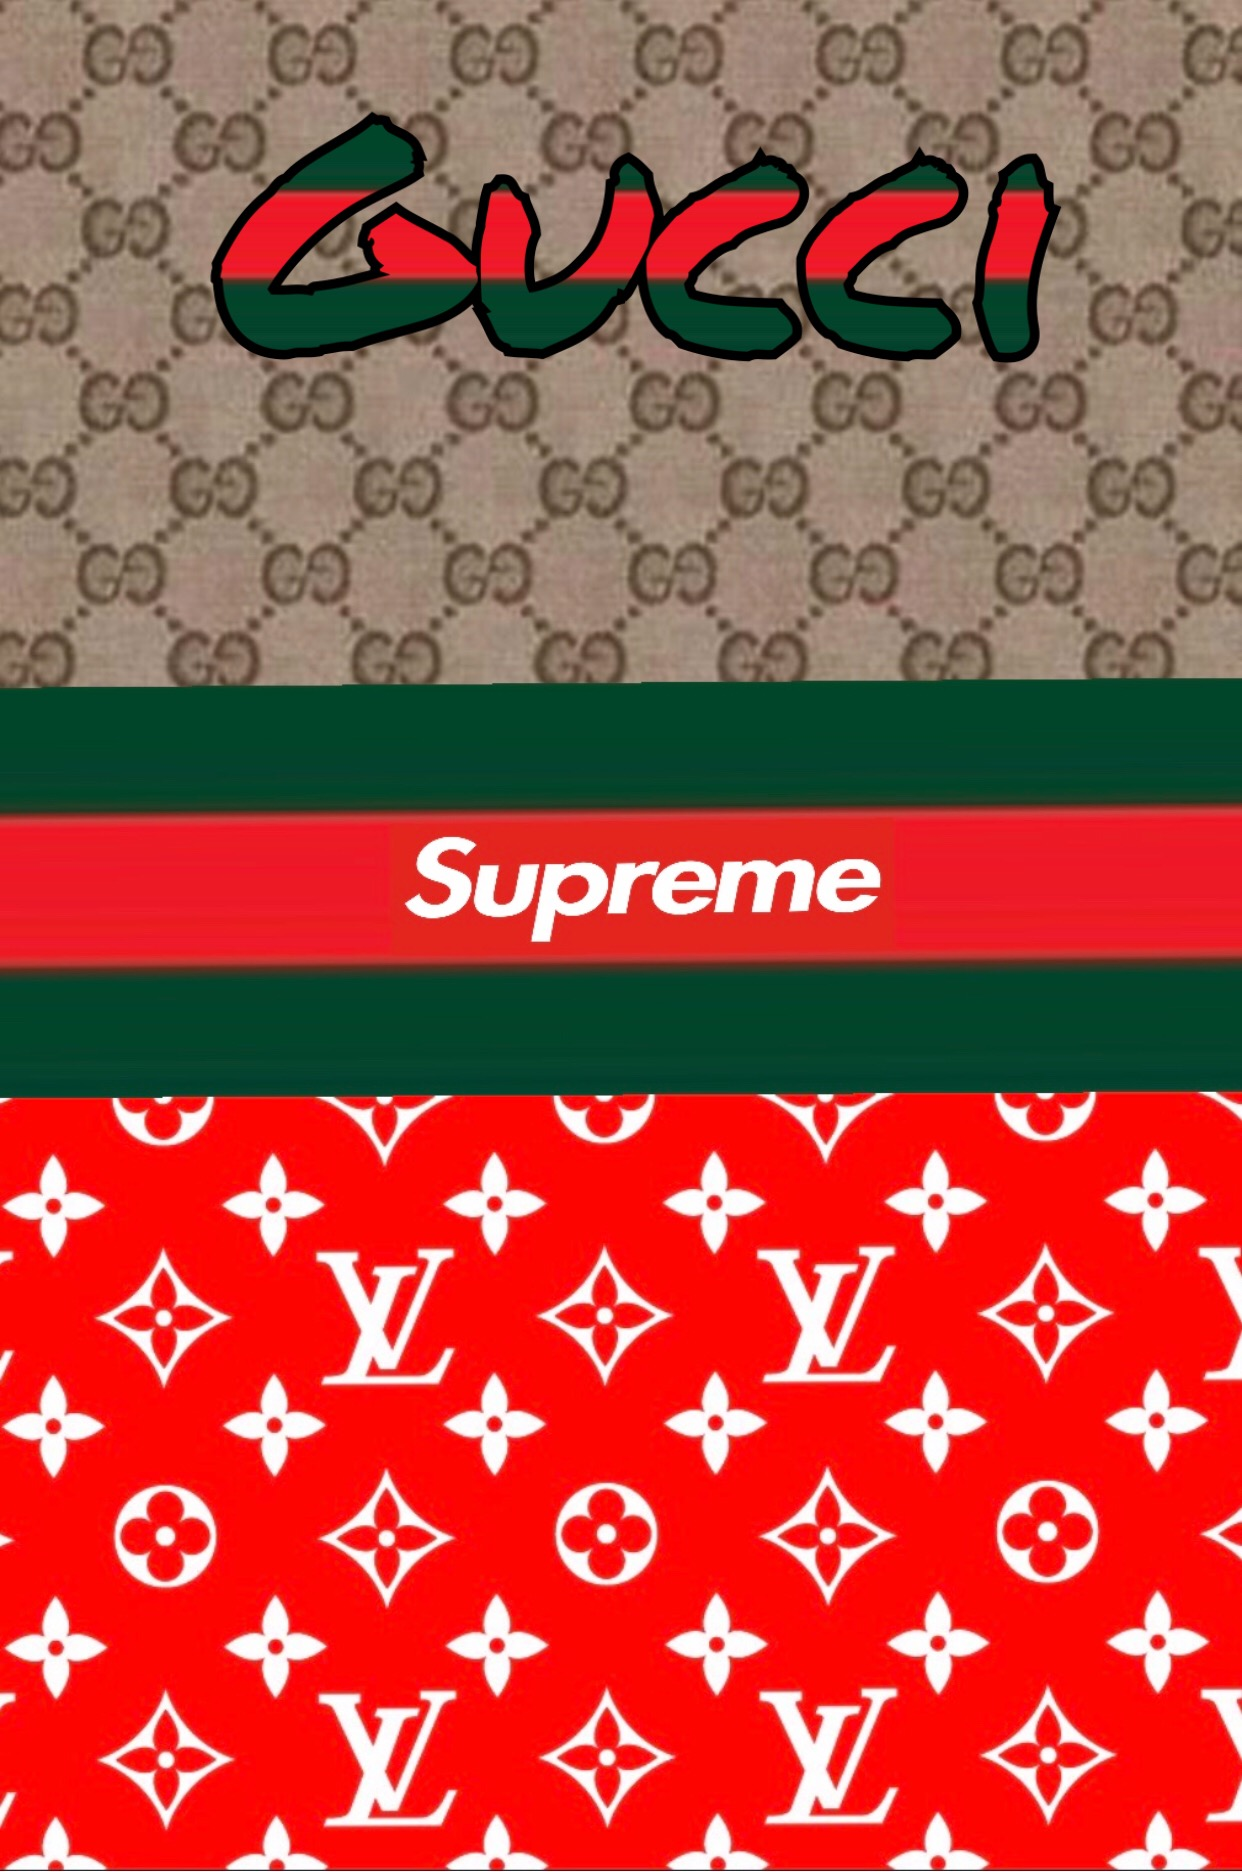 Lv X Supreme Wallpaper Hd Ahoy Comics